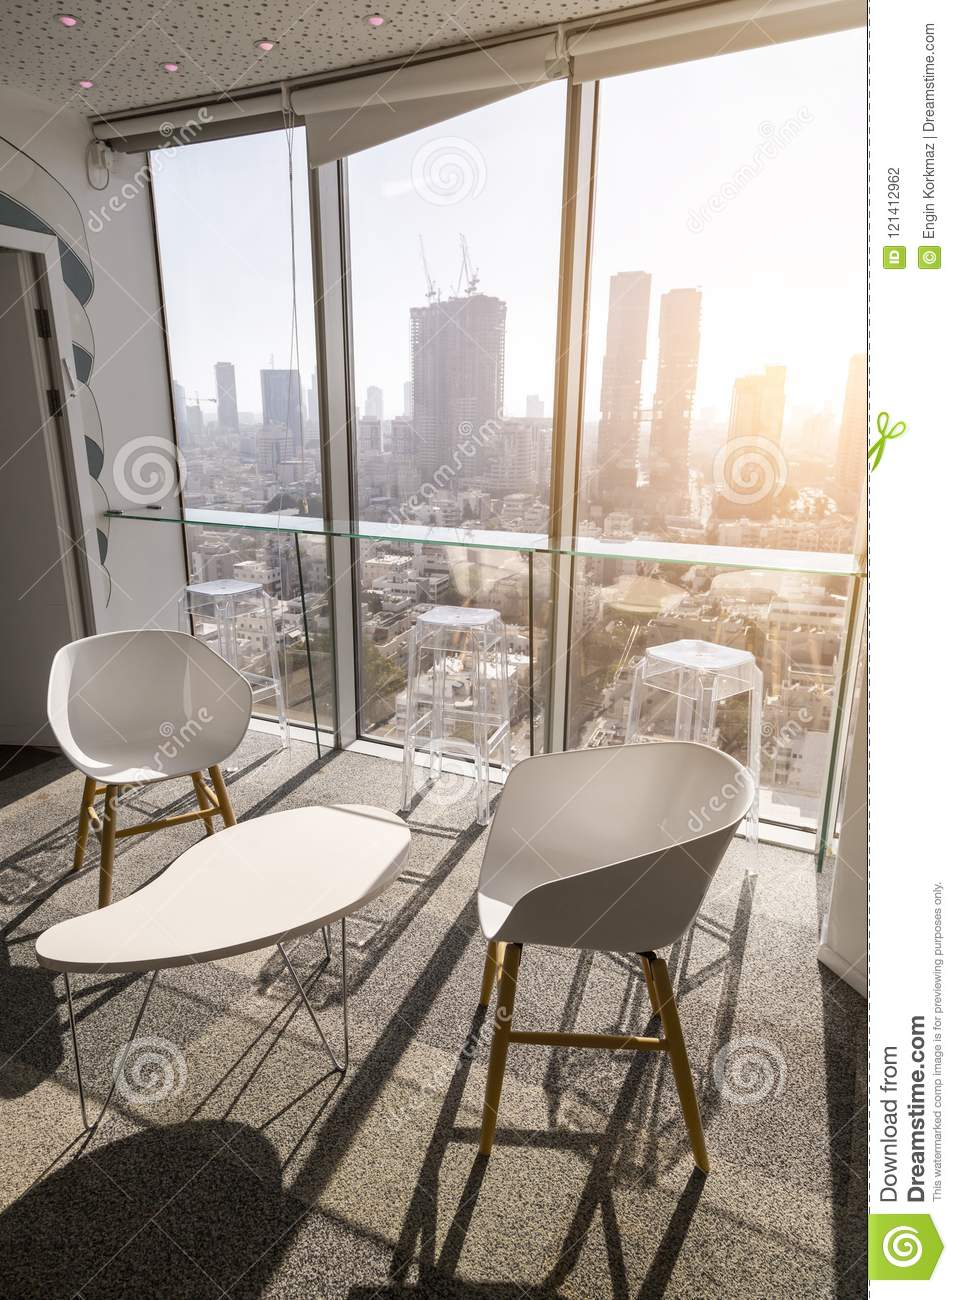 Google office environment Workspace Tel Aviv Israel June 9 2018 Interior View Of Google Office In Tel Aviv Creative And Entertaining Environment Was Created For The Team Dreamstimecom Google Office Tel Aviv Israel Editorial Photography Image Of